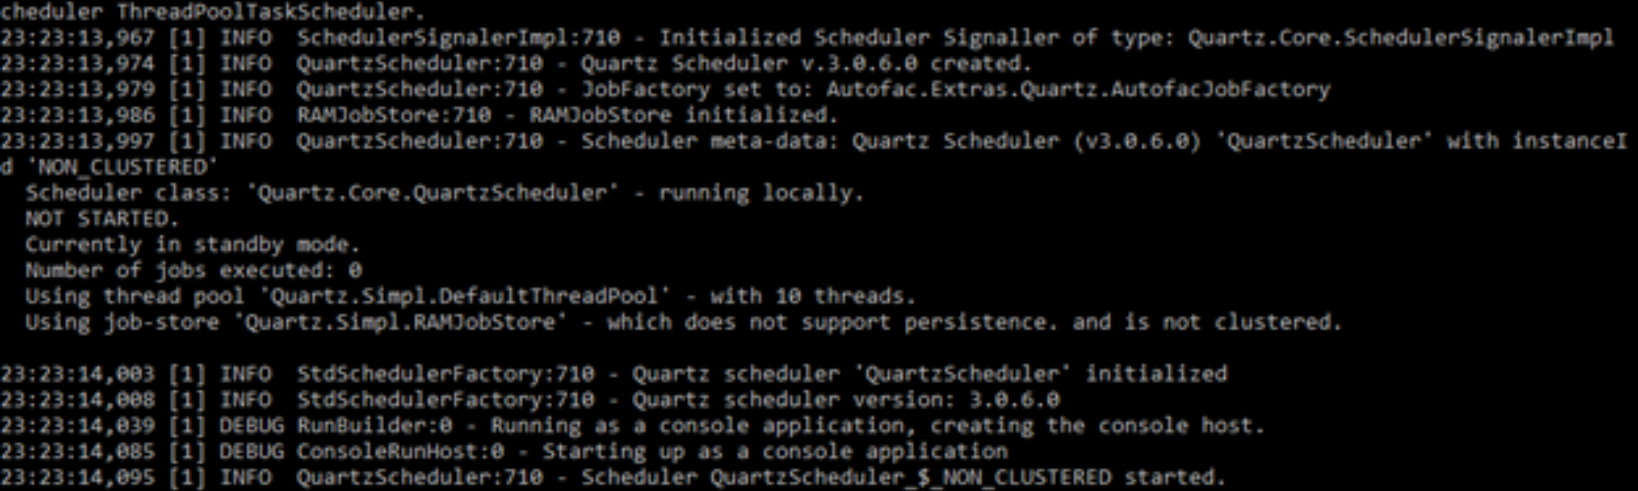 How to: Schedule jobs from a Windows Service using Quartz — Part 4